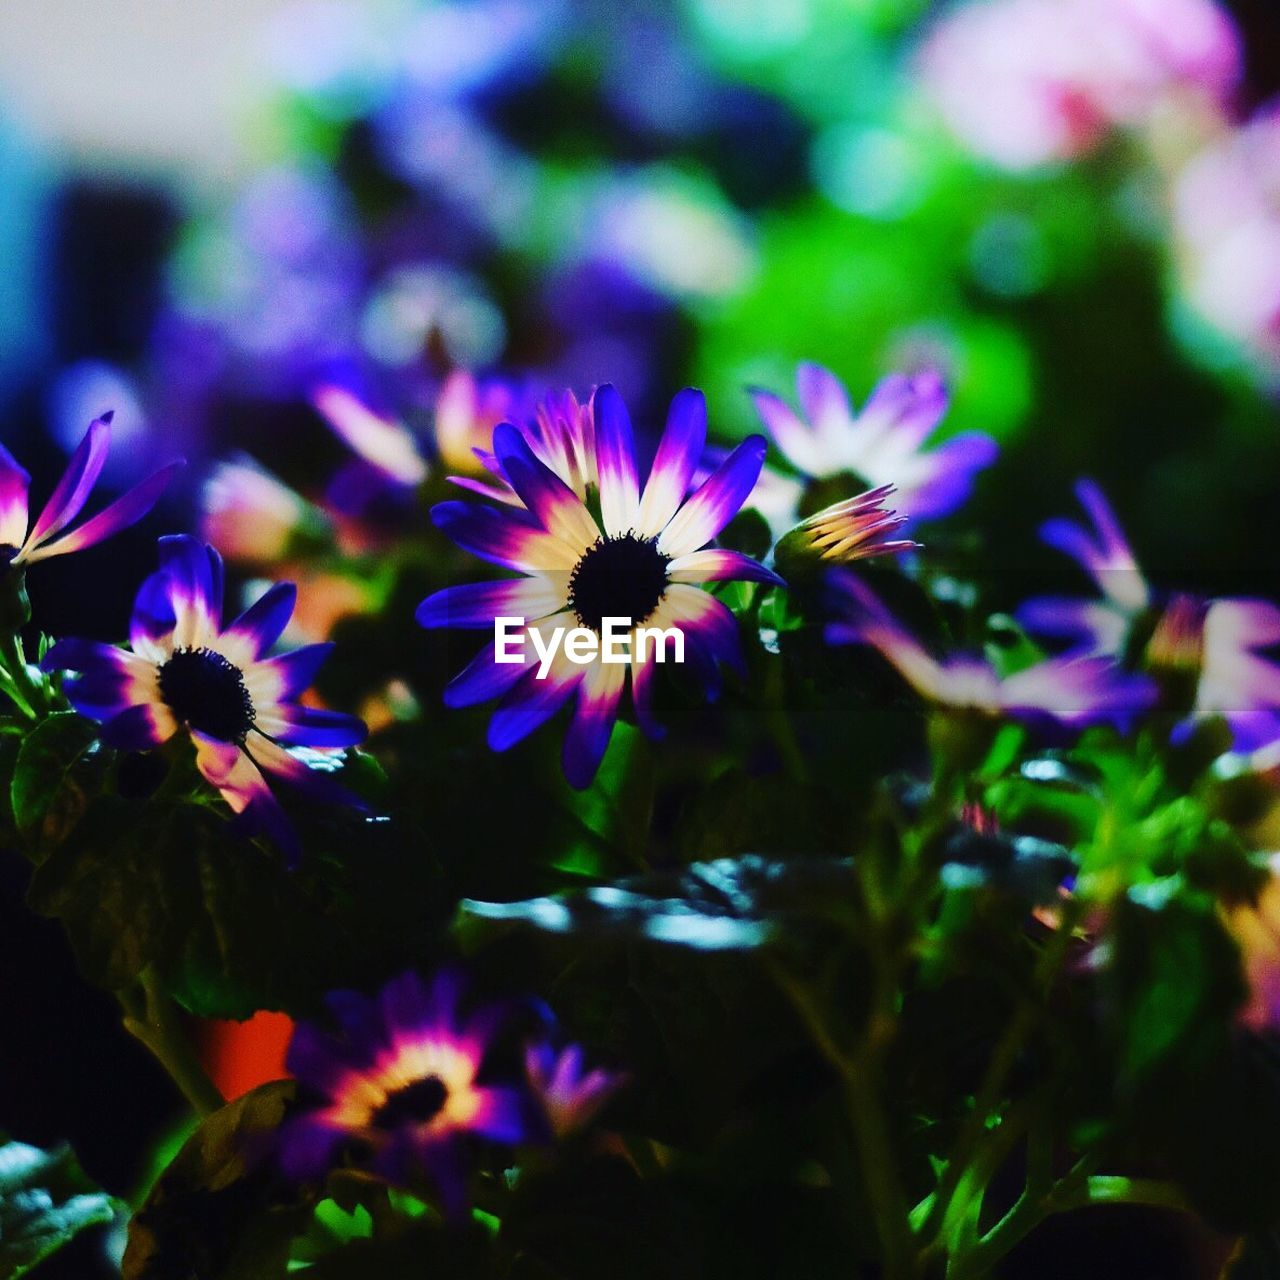 flower, nature, beauty in nature, growth, petal, fragility, purple, freshness, plant, no people, outdoors, flower head, blooming, day, close-up